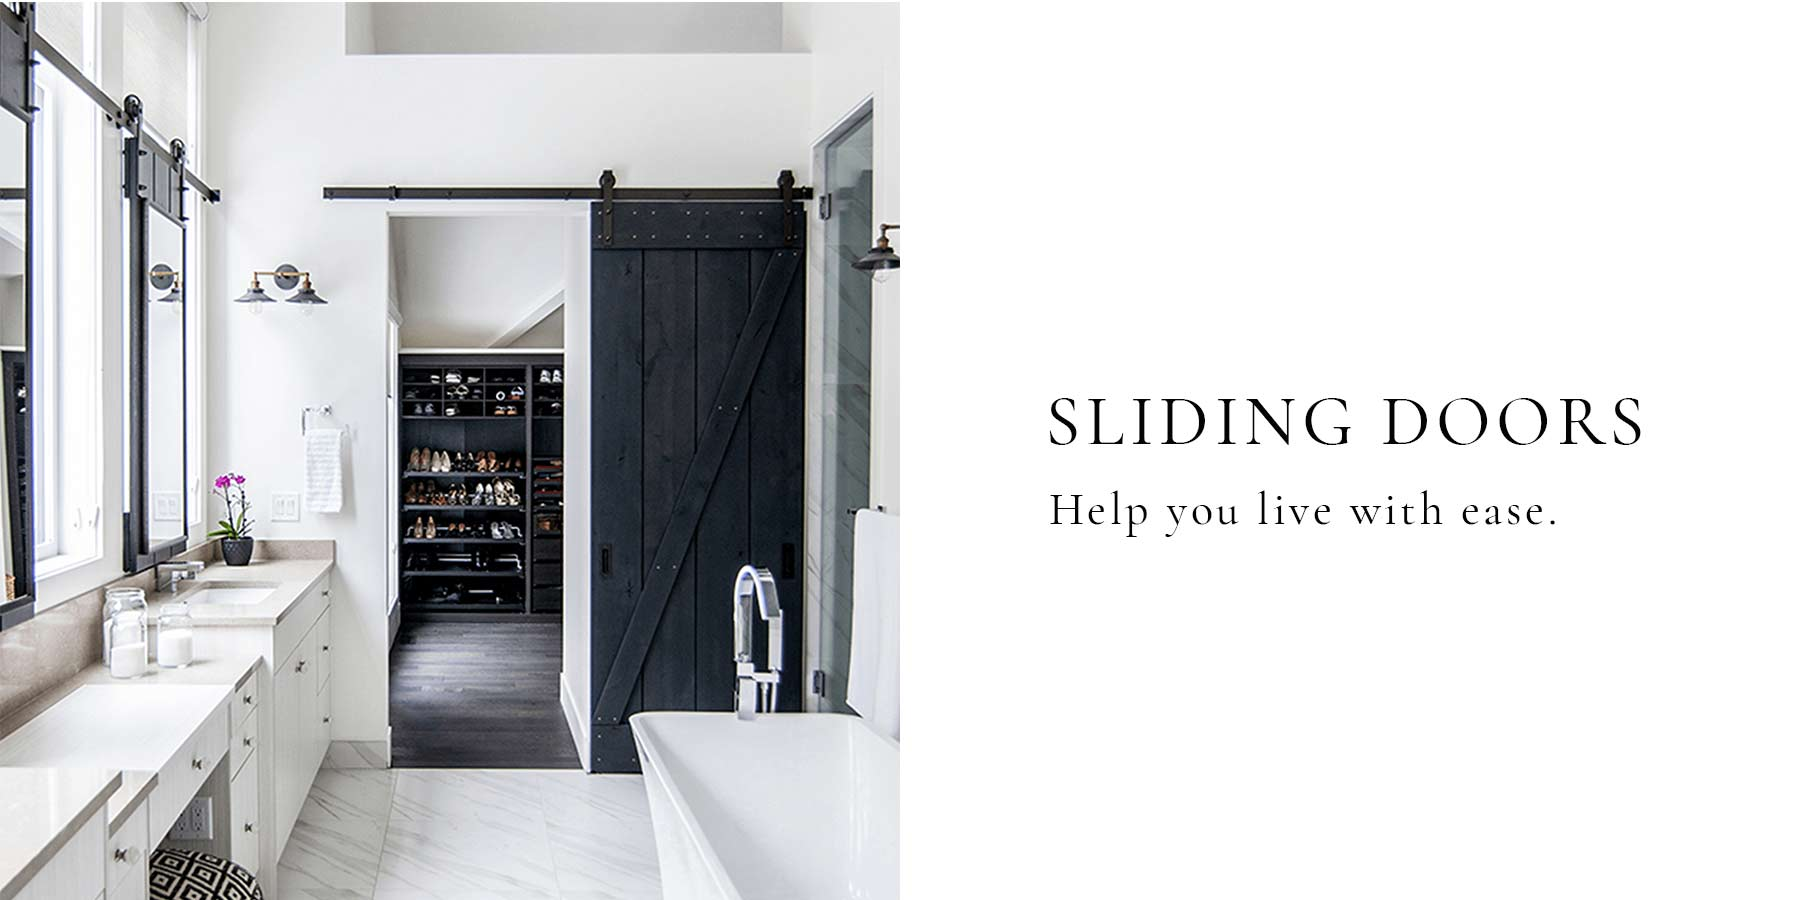 Traditional barn door design in black weathered wood installed in a luxurious closet space.